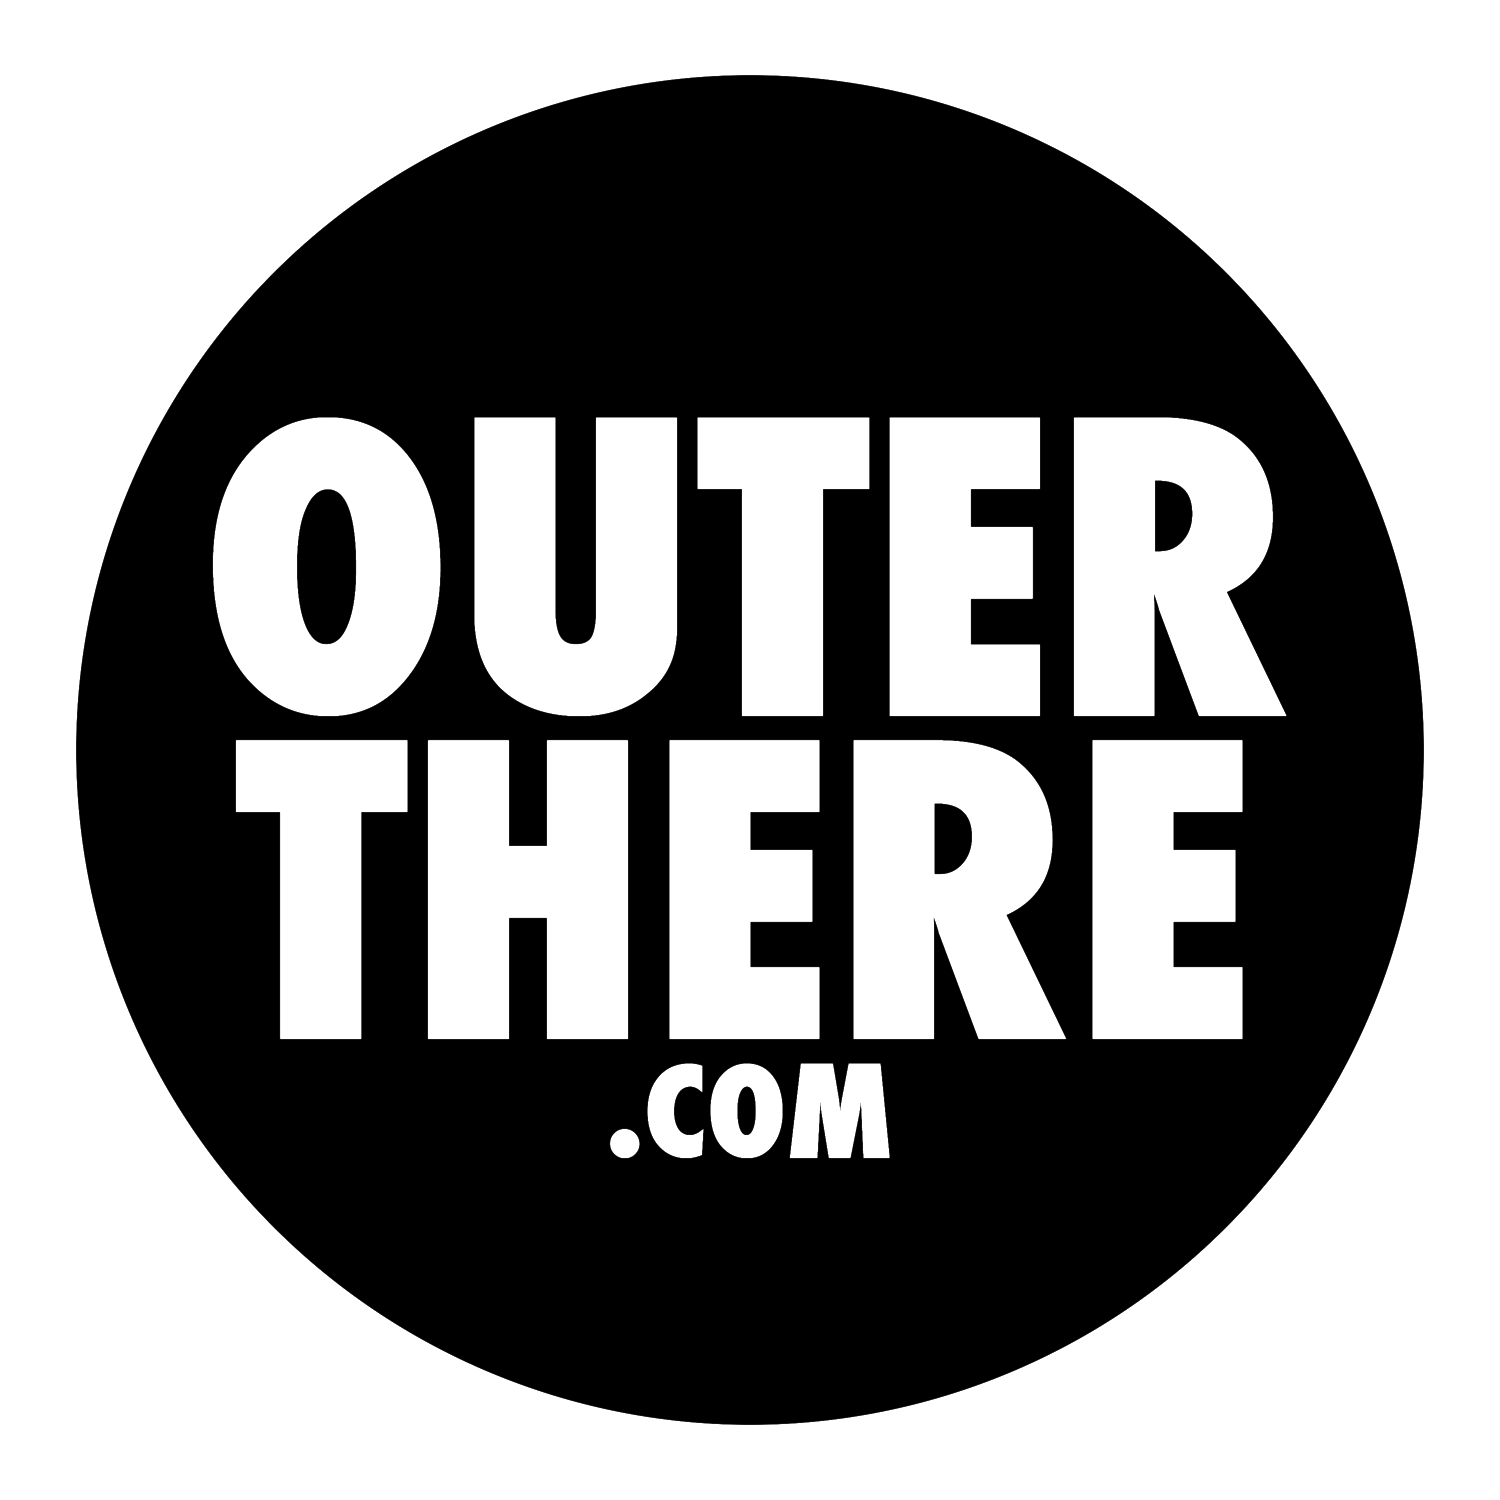 Outerthere